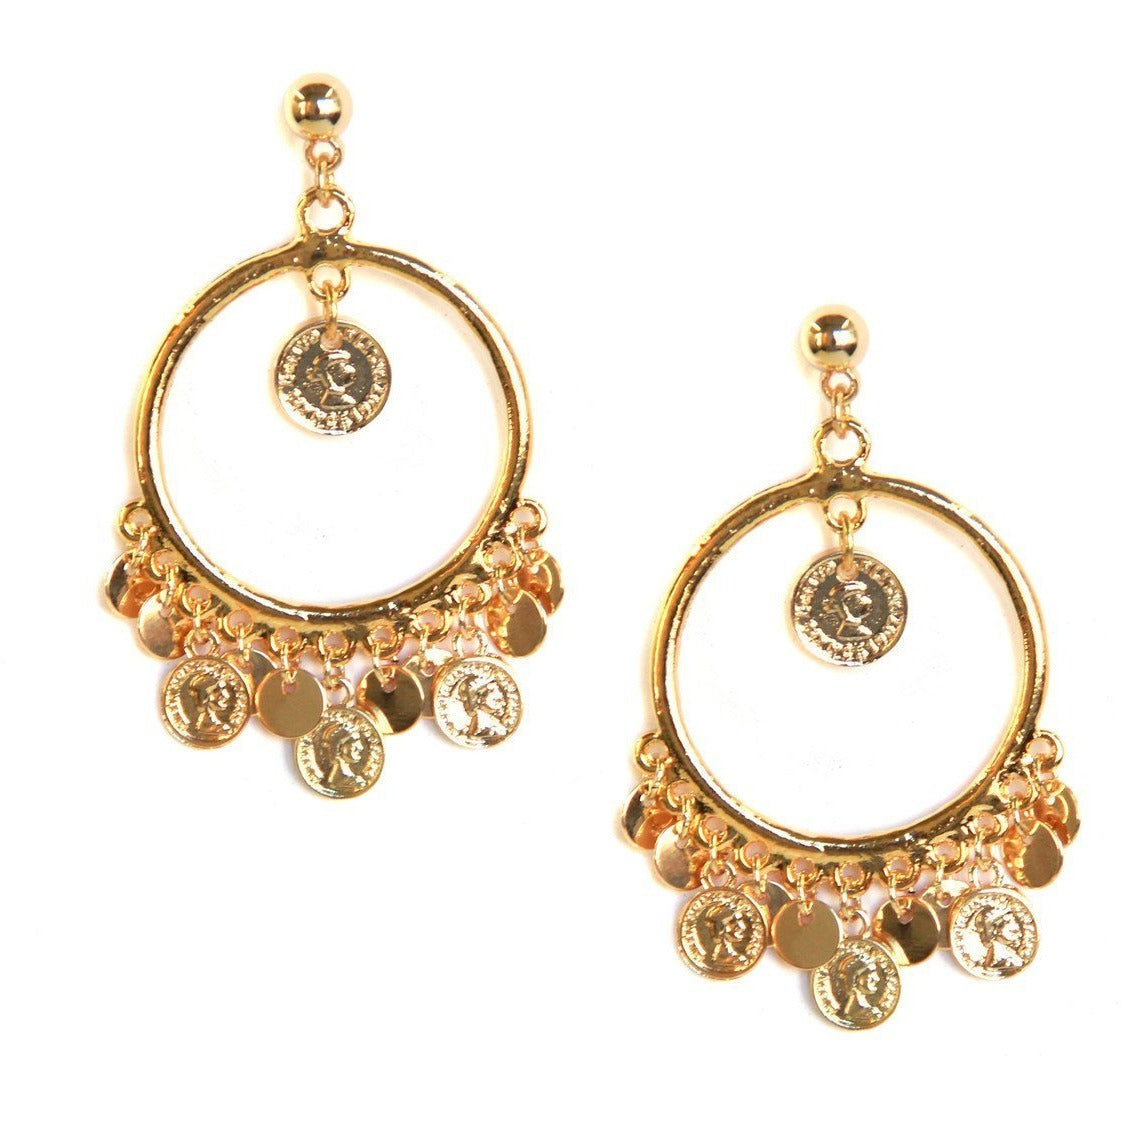 San Juan Coin Earrings